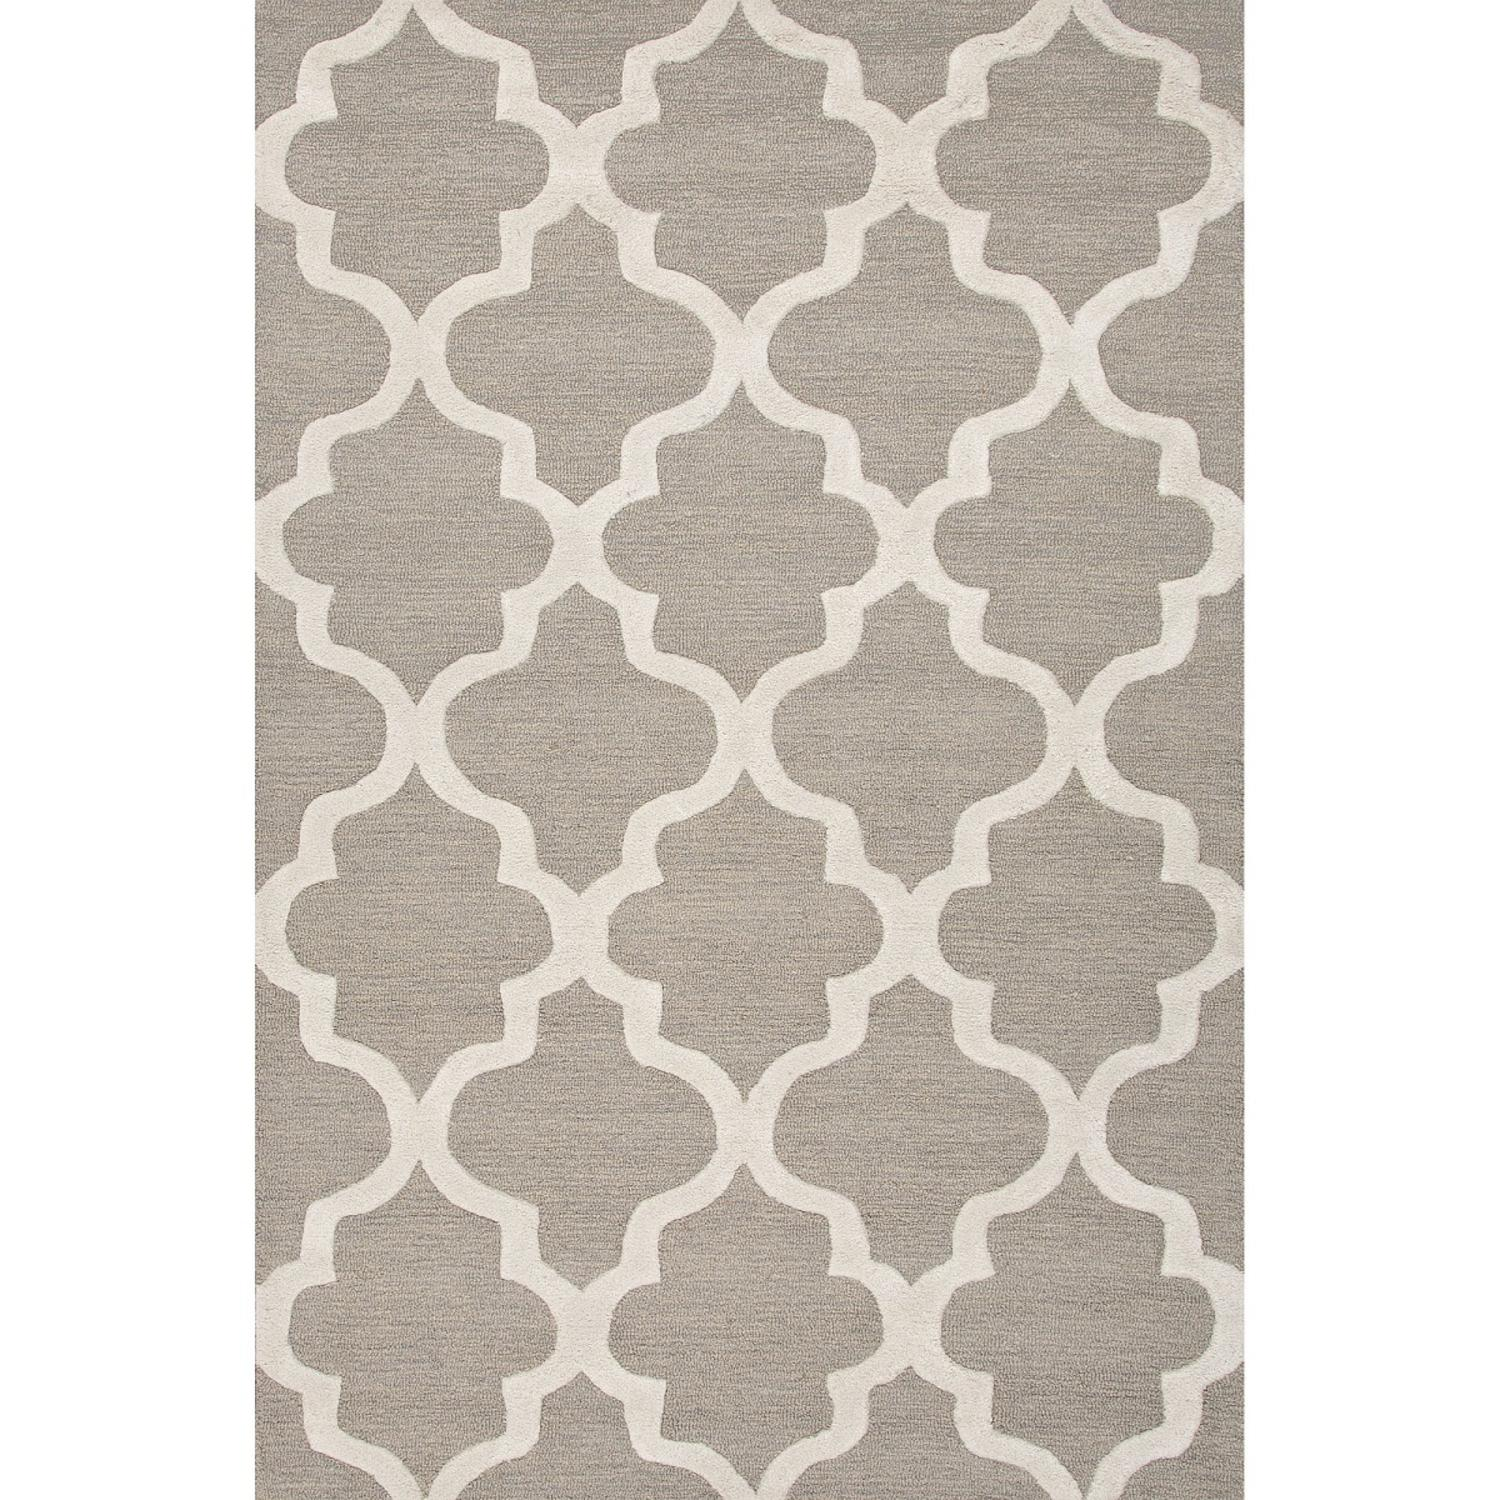 2' x 3' Stone Gray and Snow White Modern Miami Hand Tufted Wool Area Throw Rug